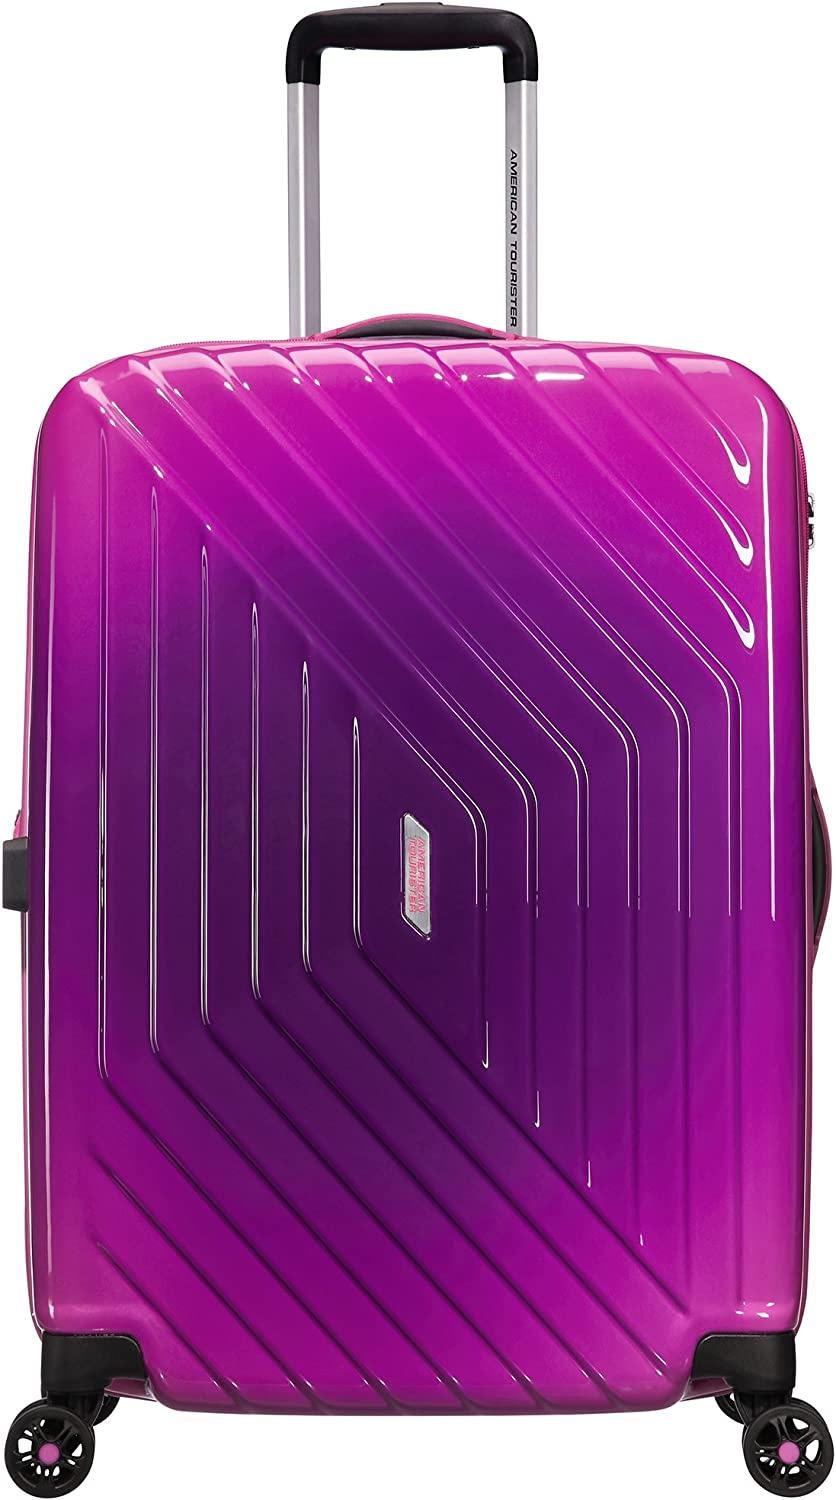 air force 1 american tourister